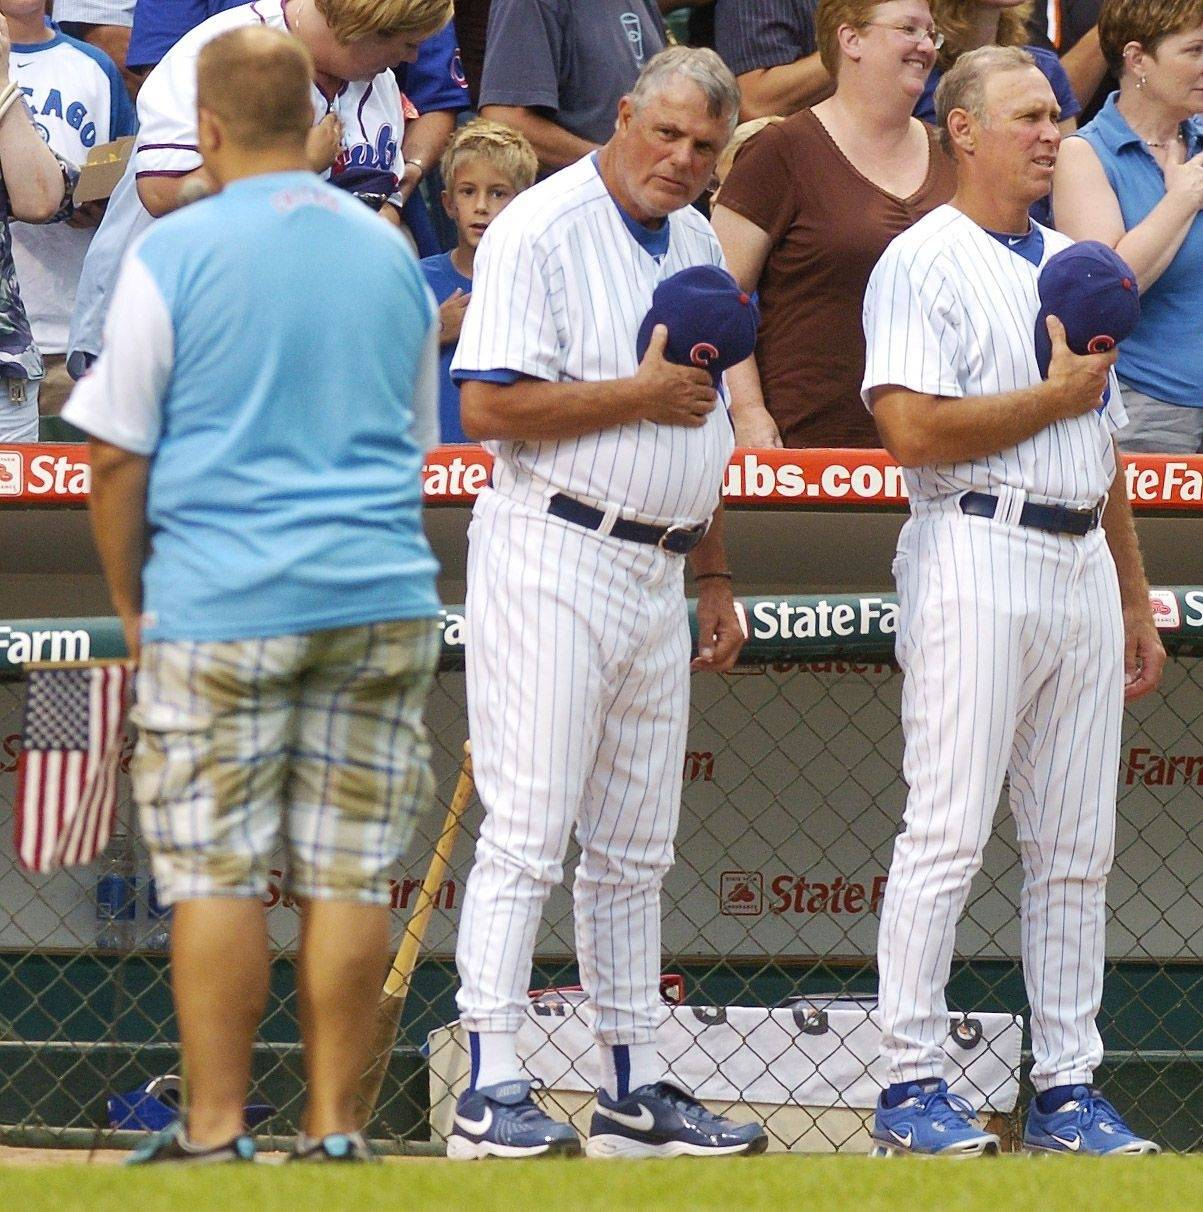 Cubs manager Lou Piniella, center, stands with bench coach Alan Trammell during the singing of the National Anthem prior to Tuesday's game at Wrigley Field.